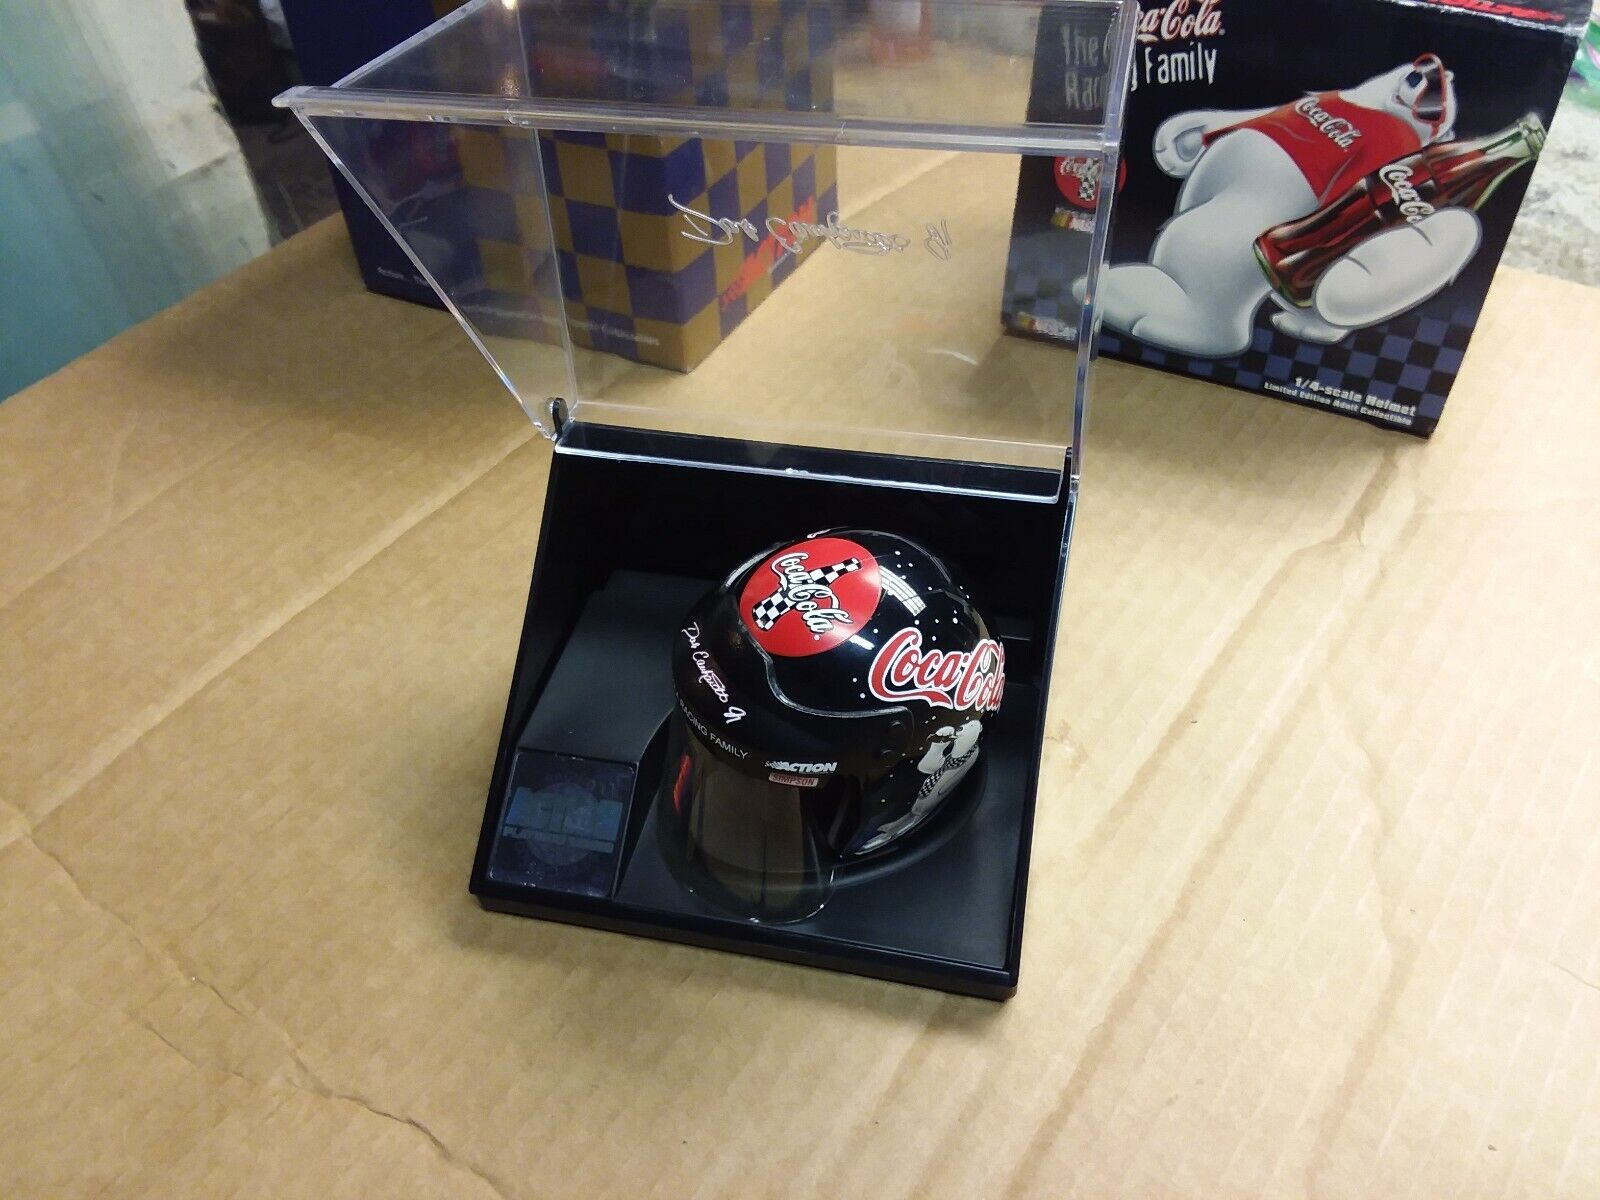 DALE EARNHARDT JR. 1 4 SCALE COCA-COLA NASCAR RACING HELMET IN DISPLAY CASE